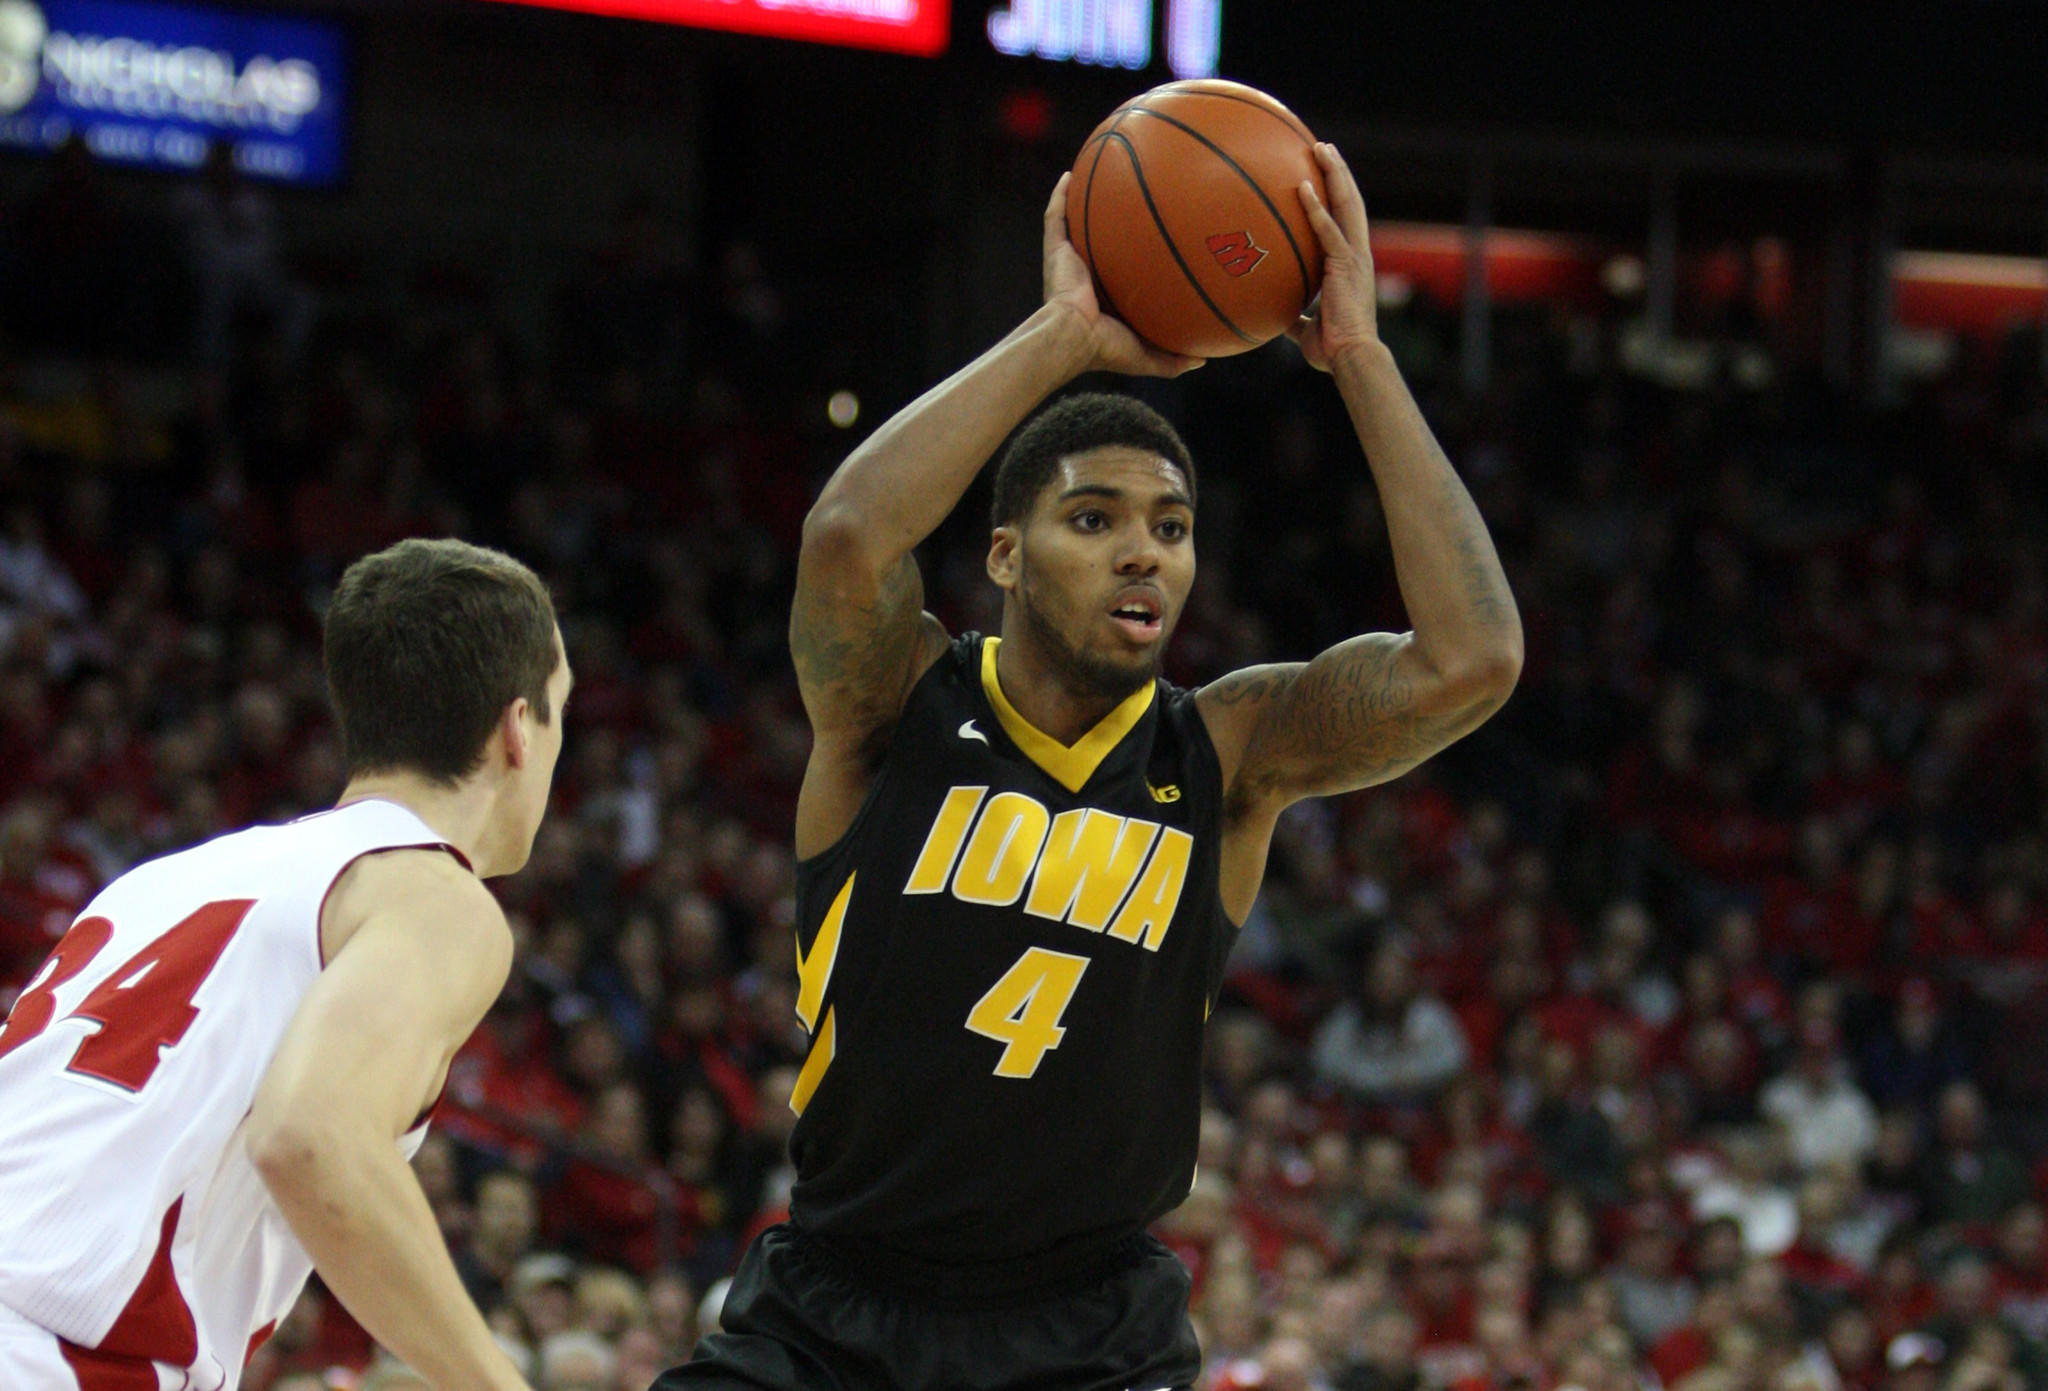 Iowa's Roy Marble looks to pass as Wisconsin's Zach Bohannon defends at the Kohl Center.